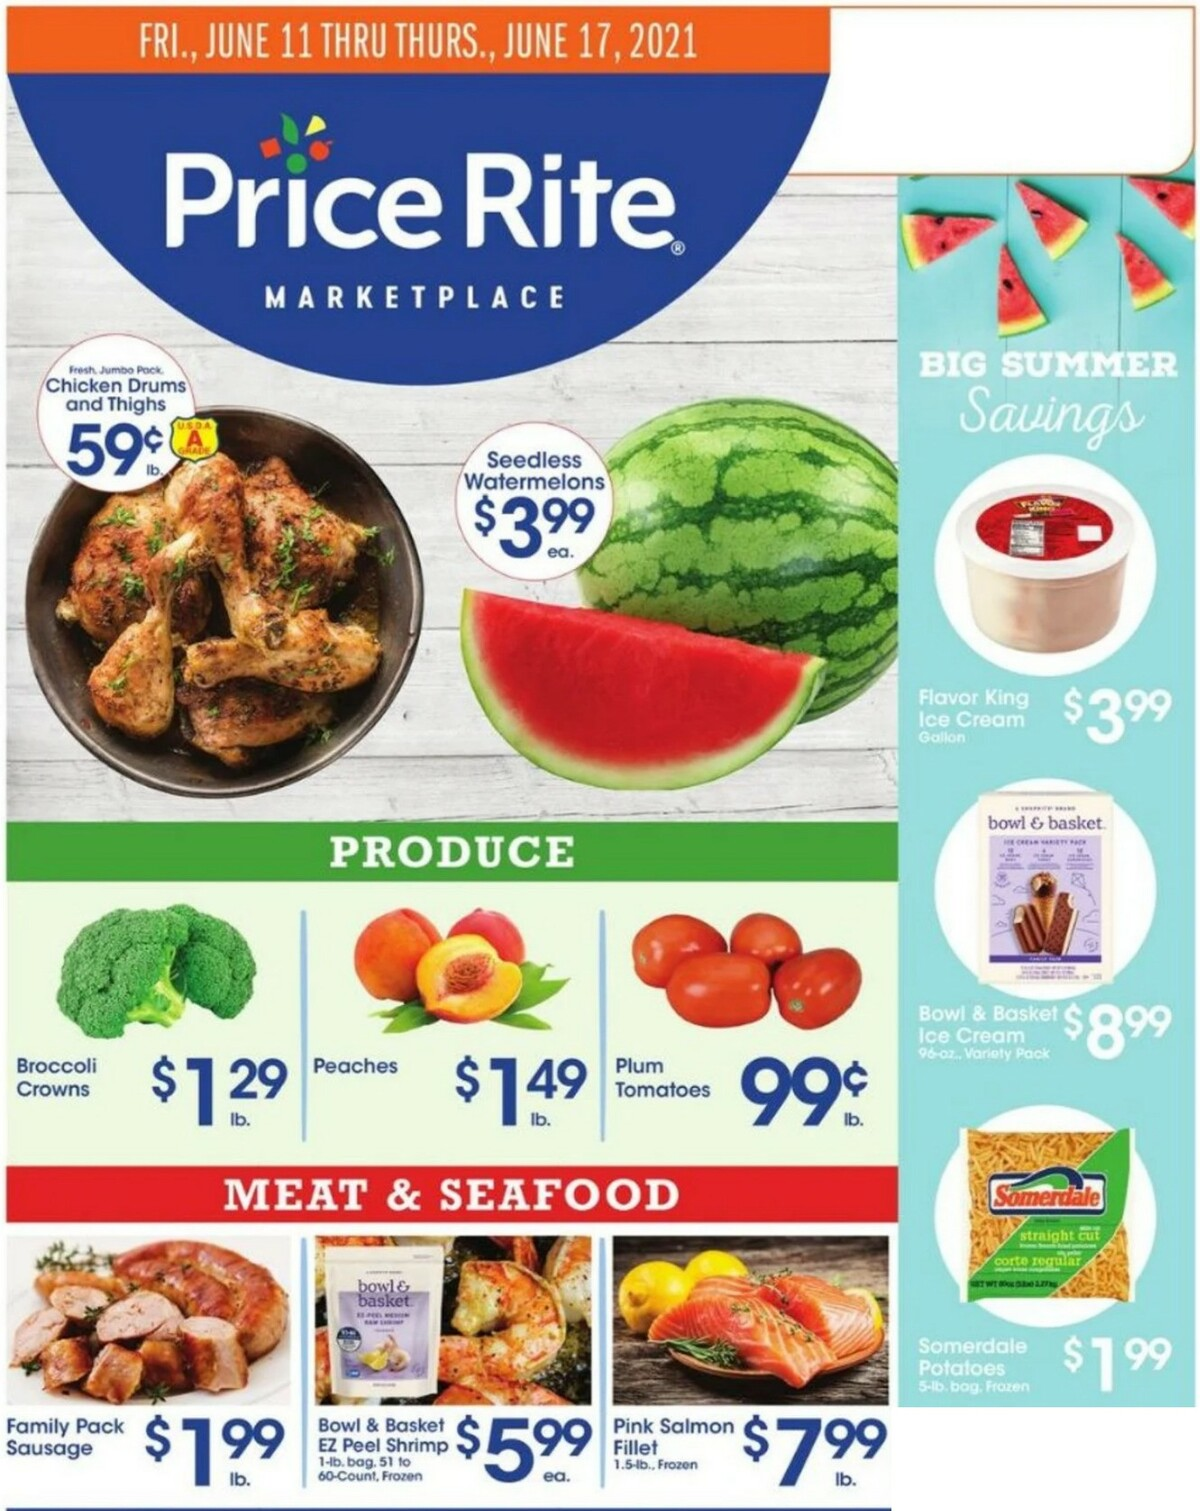 Price Rite Weekly Ad from June 11